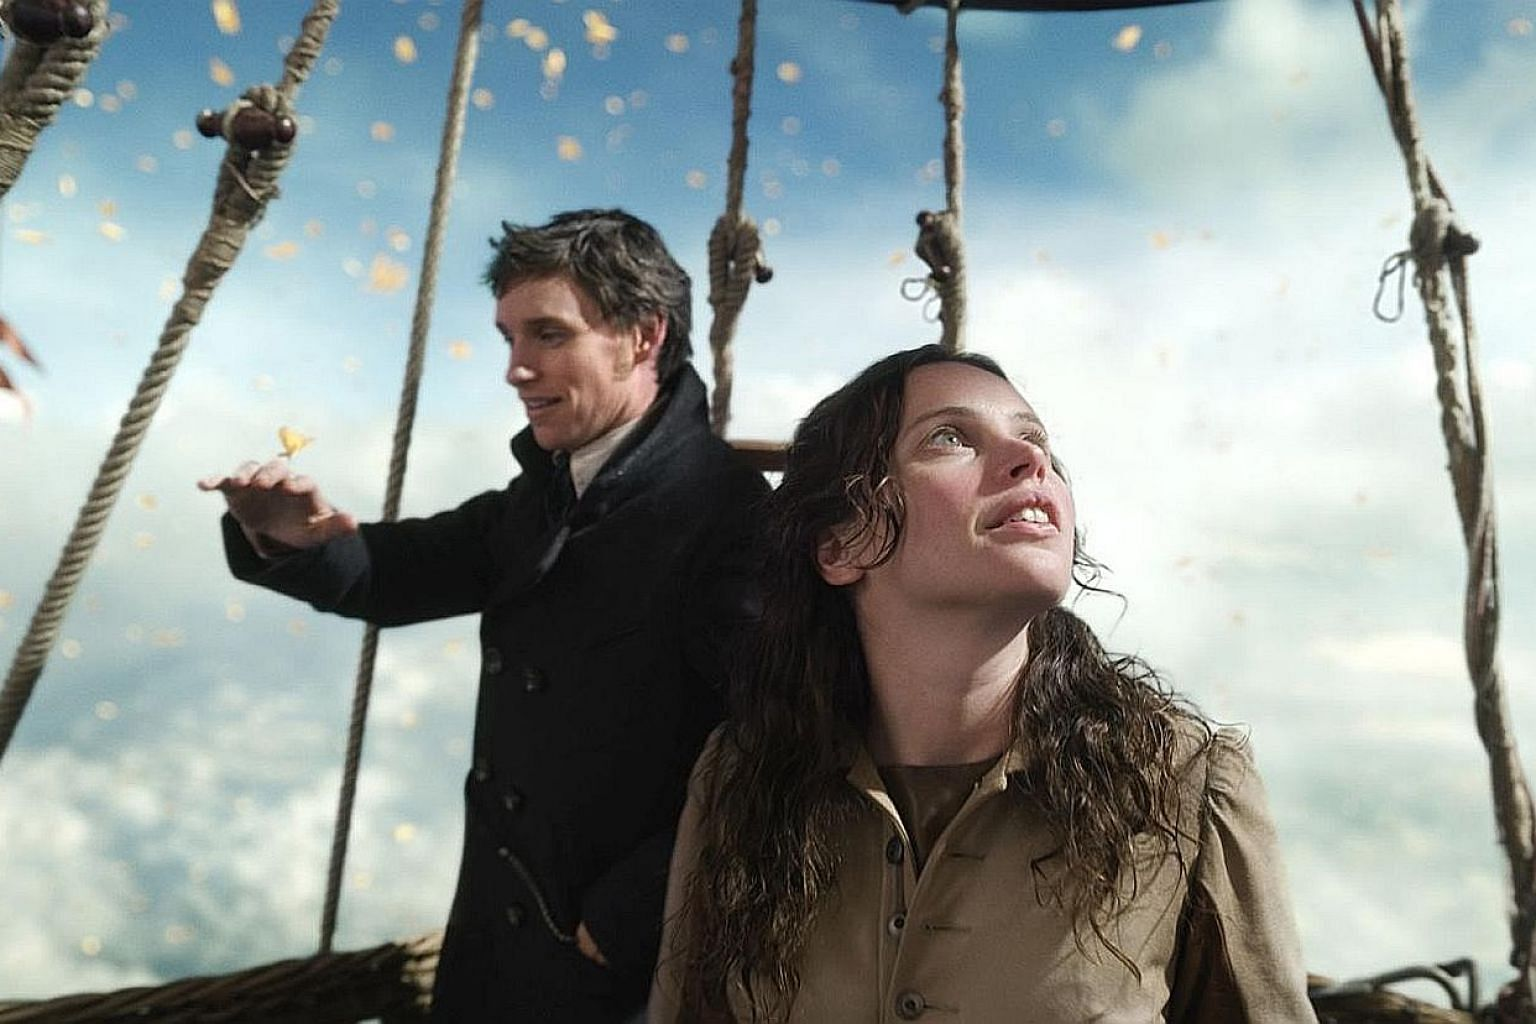 The Aeronauts stars Eddie Redmayne as scientist James Glaisher and Felicity Jones (both above) as pilot Amelia Wren.